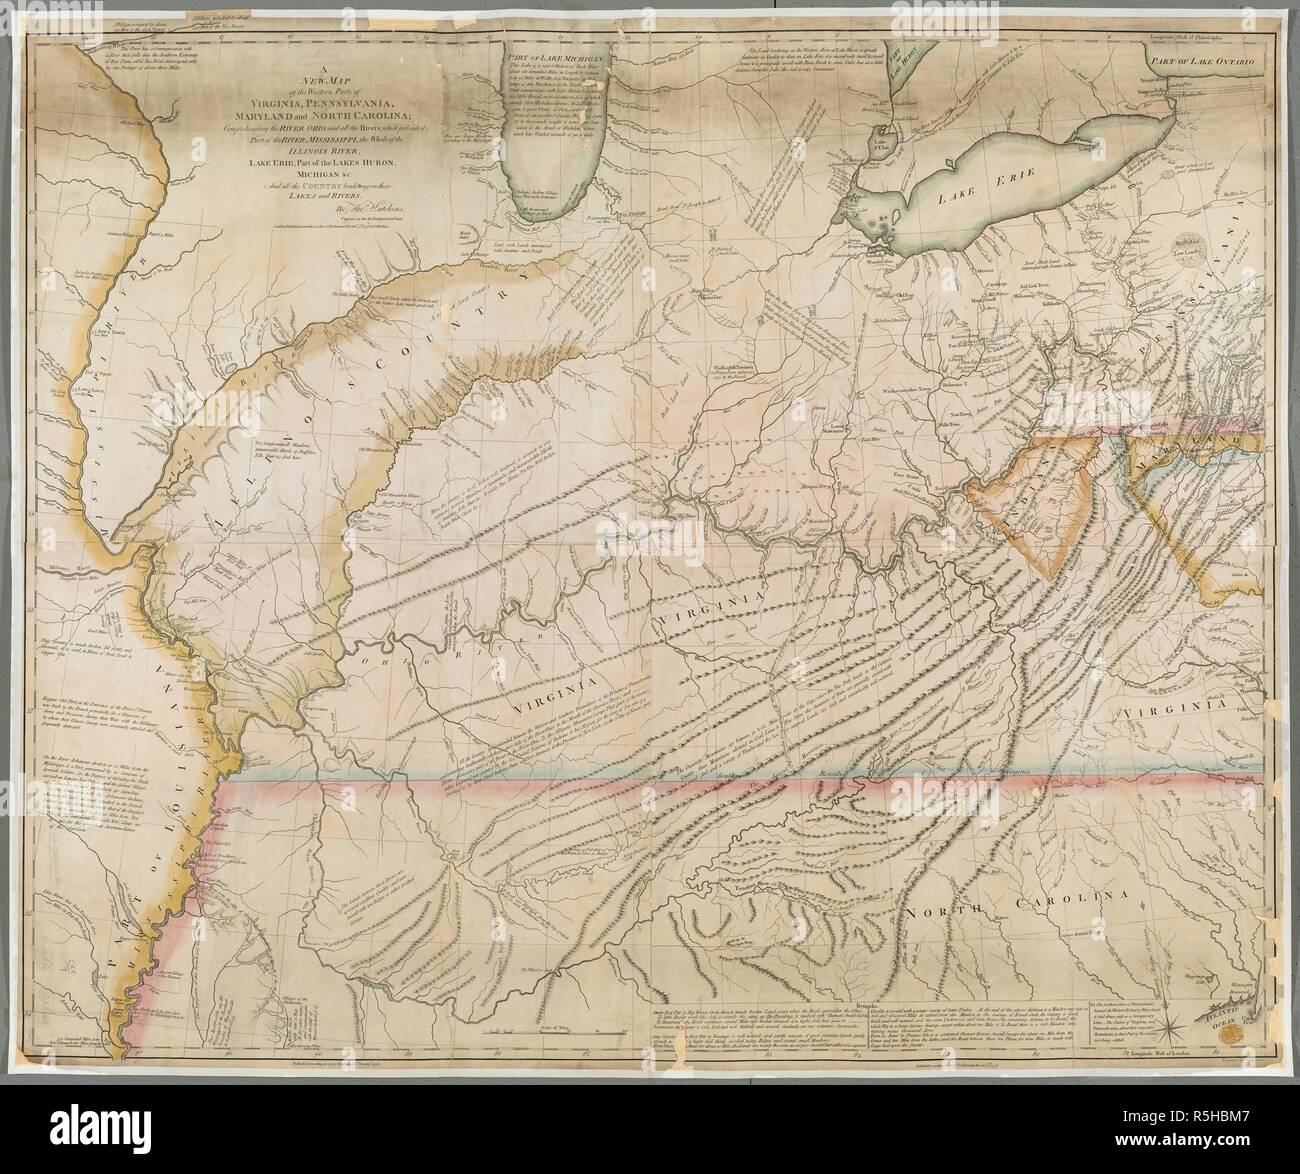 A map of the Western Parts of Virginia, Pennsylvania ... Map Of Western Pa Lakes on map of midwest lakes, map of new york lakes, map of canonsburg lake pa, map of florida lakes, map of wi lakes, map of central pa, us map with rivers and lakes, map of poconos pa, map of minnesota lakes, map of eastern pa, map of route 209 pa, map of puerto rico lakes, pennsylvania lakes, map of campgrounds in pa, map of western washington, map of north dakota lakes, map of west view pa, map of washington lakes, map of southern california lakes, map of western pennsylvania,